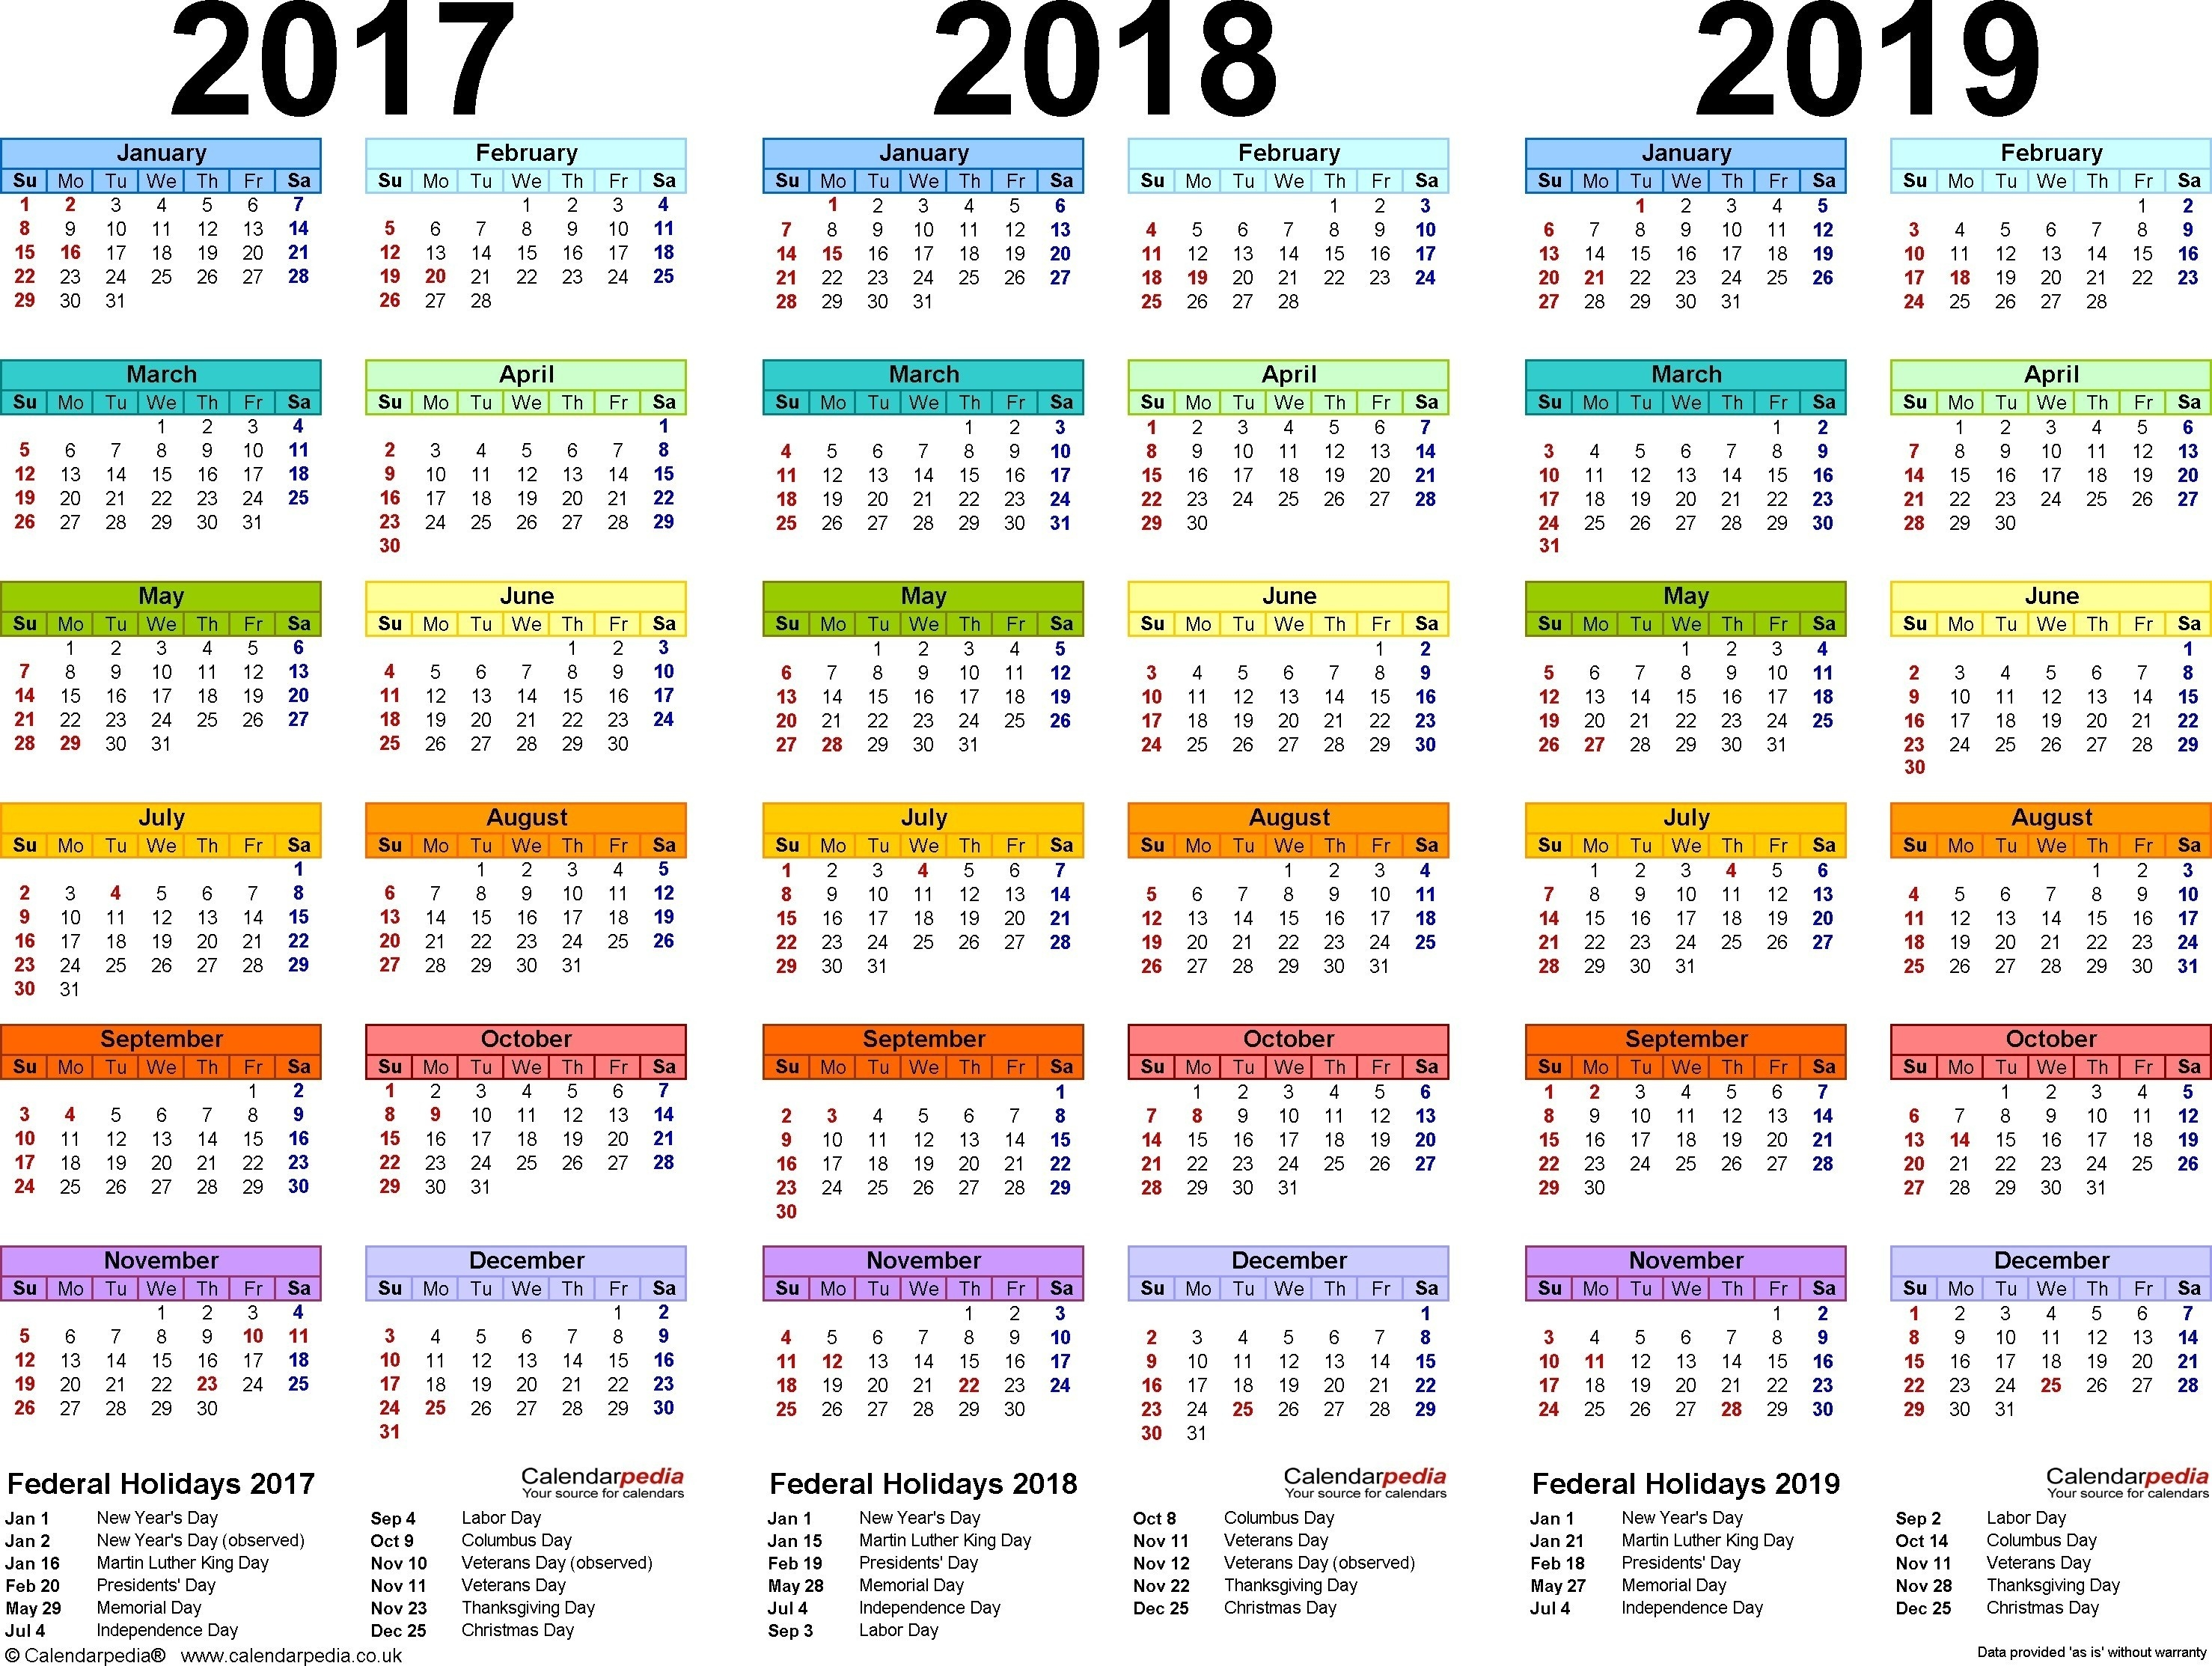 Depo Provera Calendar 2019 Printable Download For Free  Depo Provera Calendar 2020